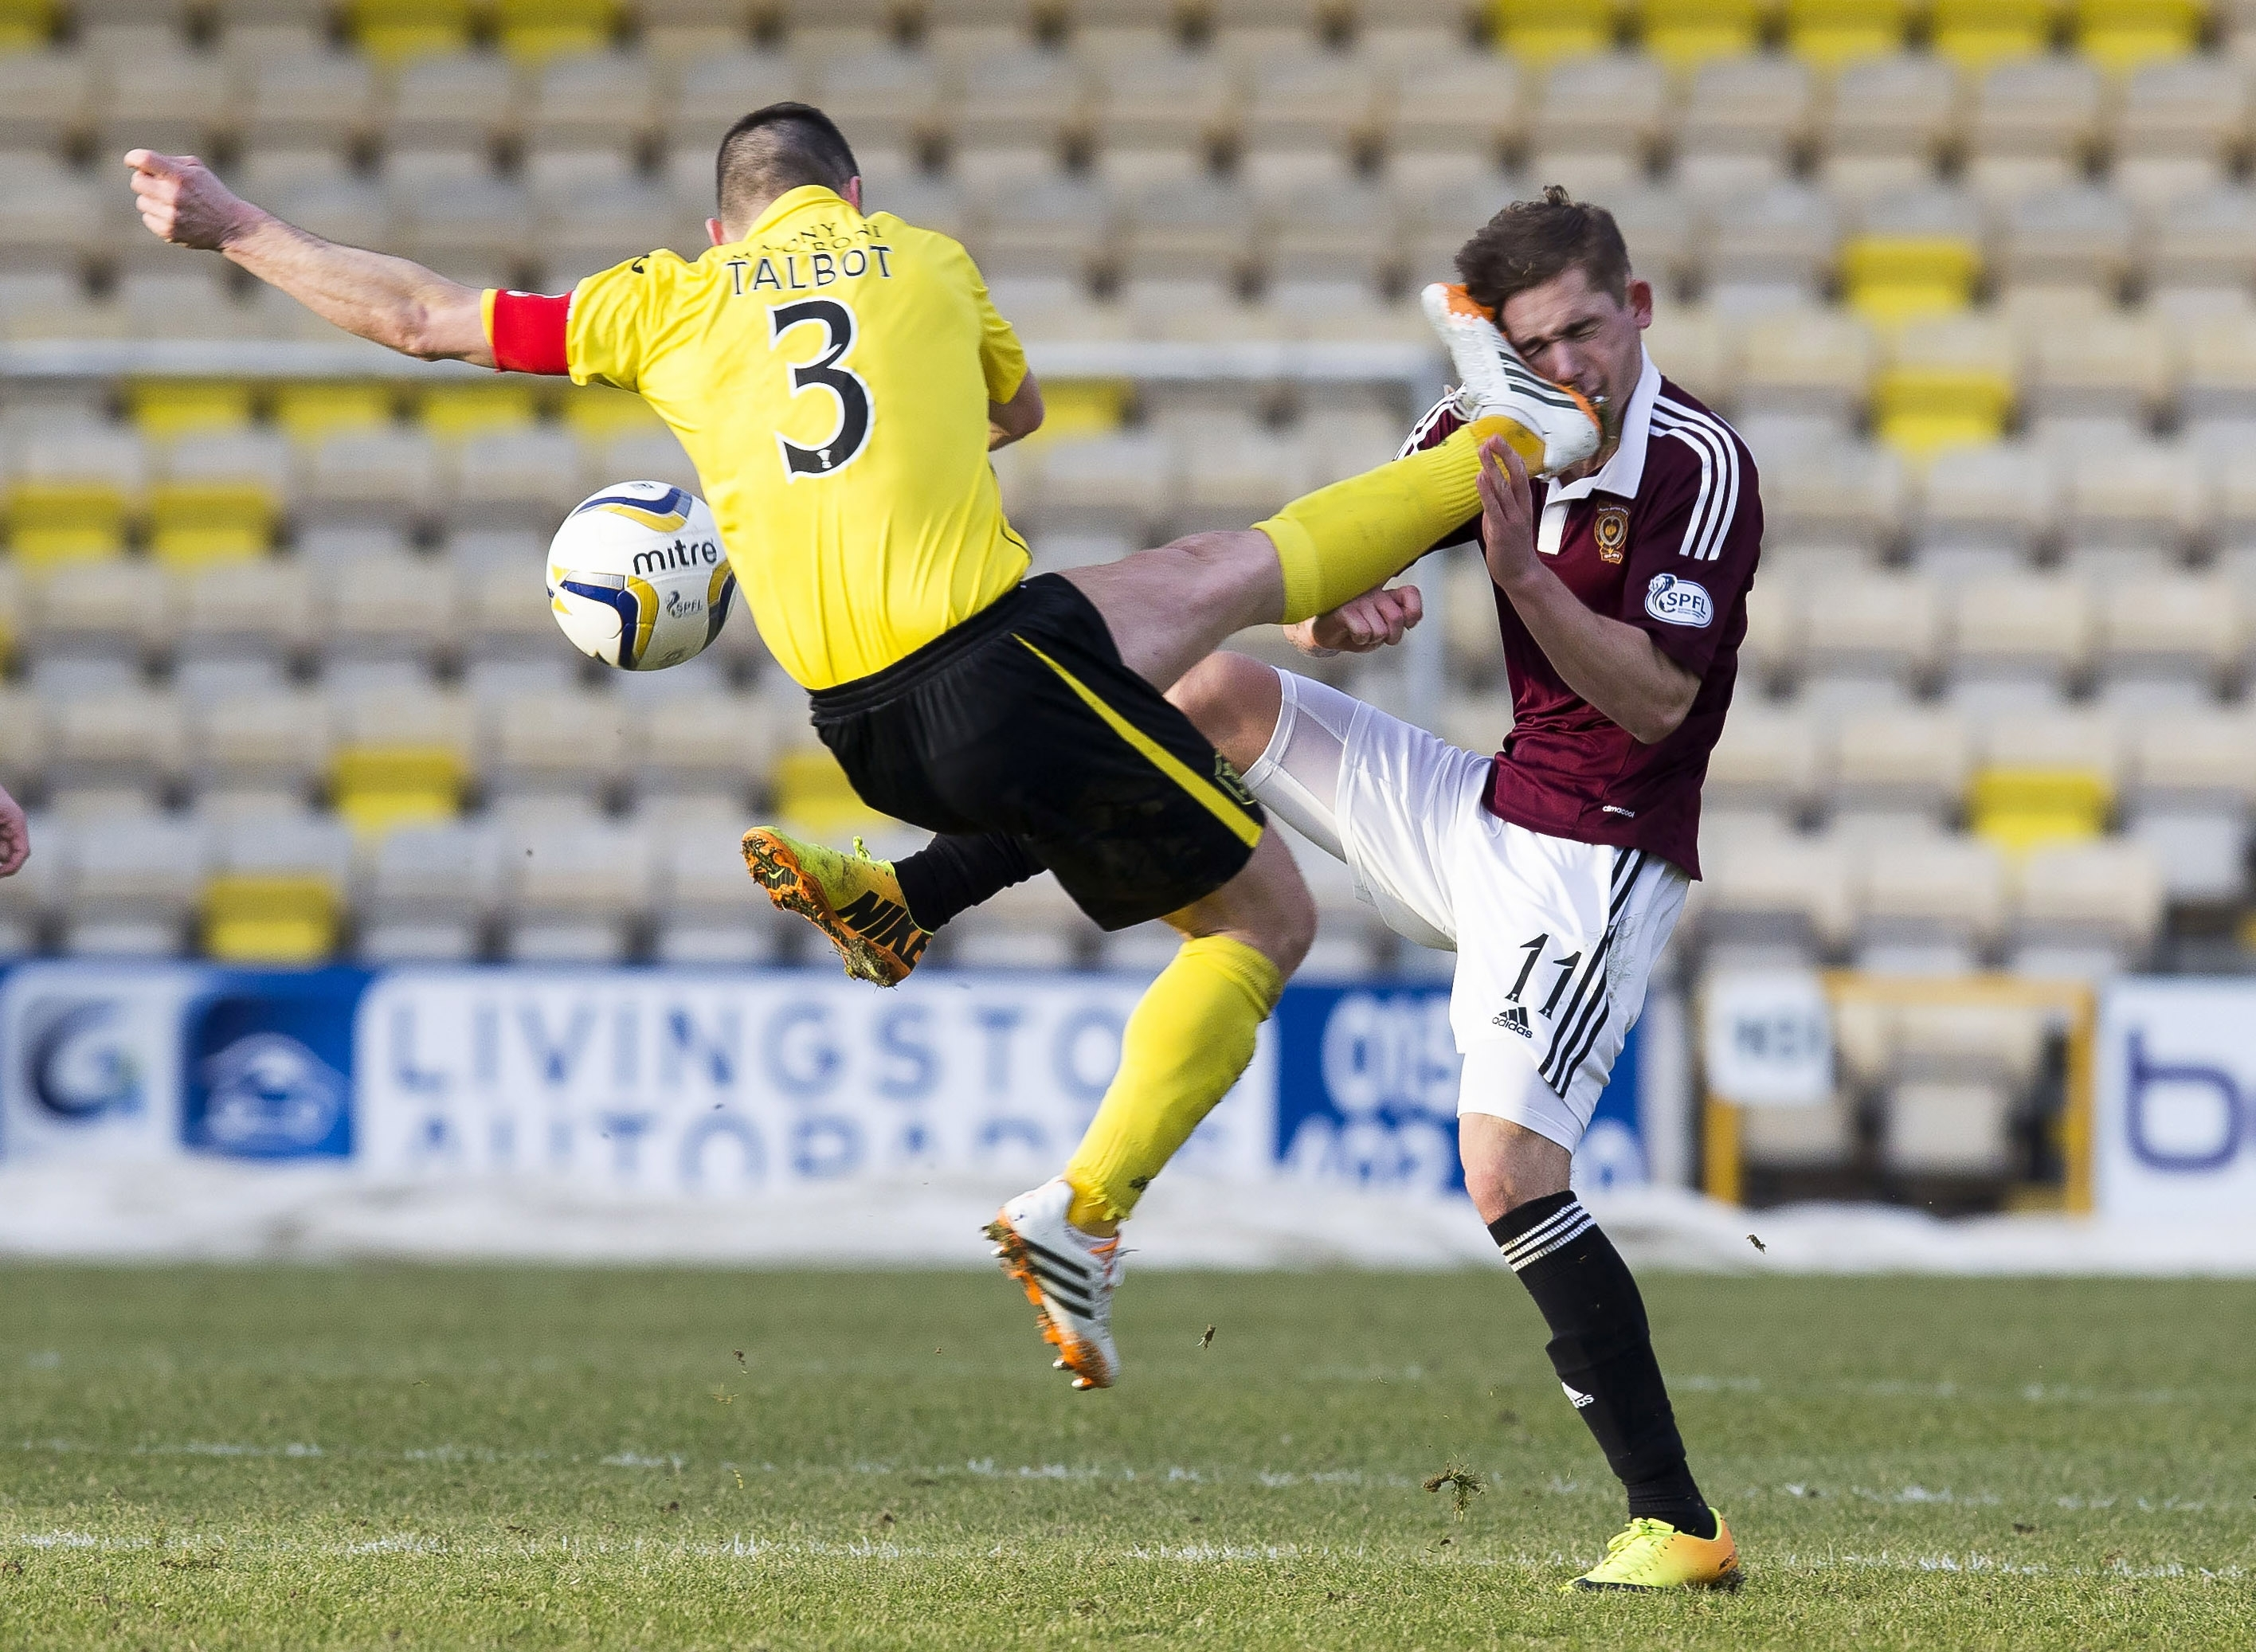 Talbot was only booked for this challenge on Saturday